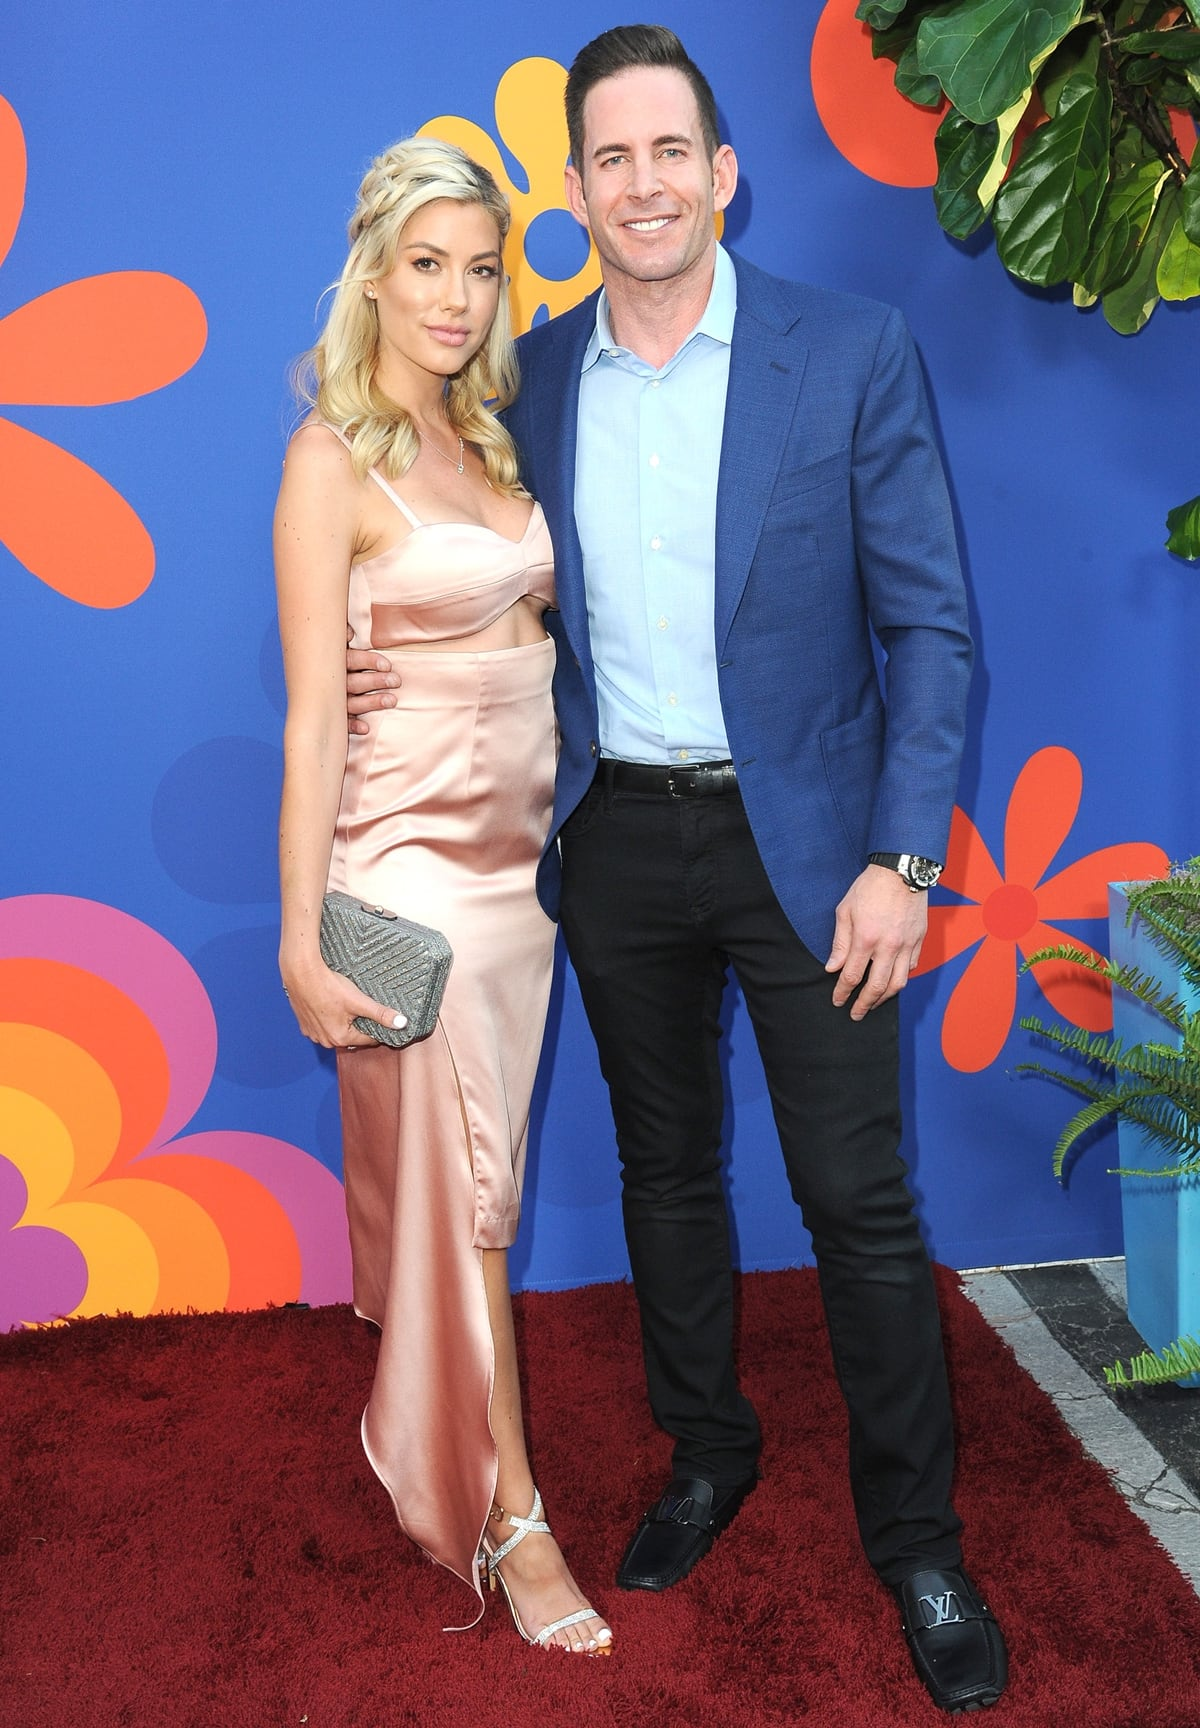 Tarek El Moussa and Heather Rae Young got engaged in July 2020, one year after meeting on his yacht, which is named Bad Decisions